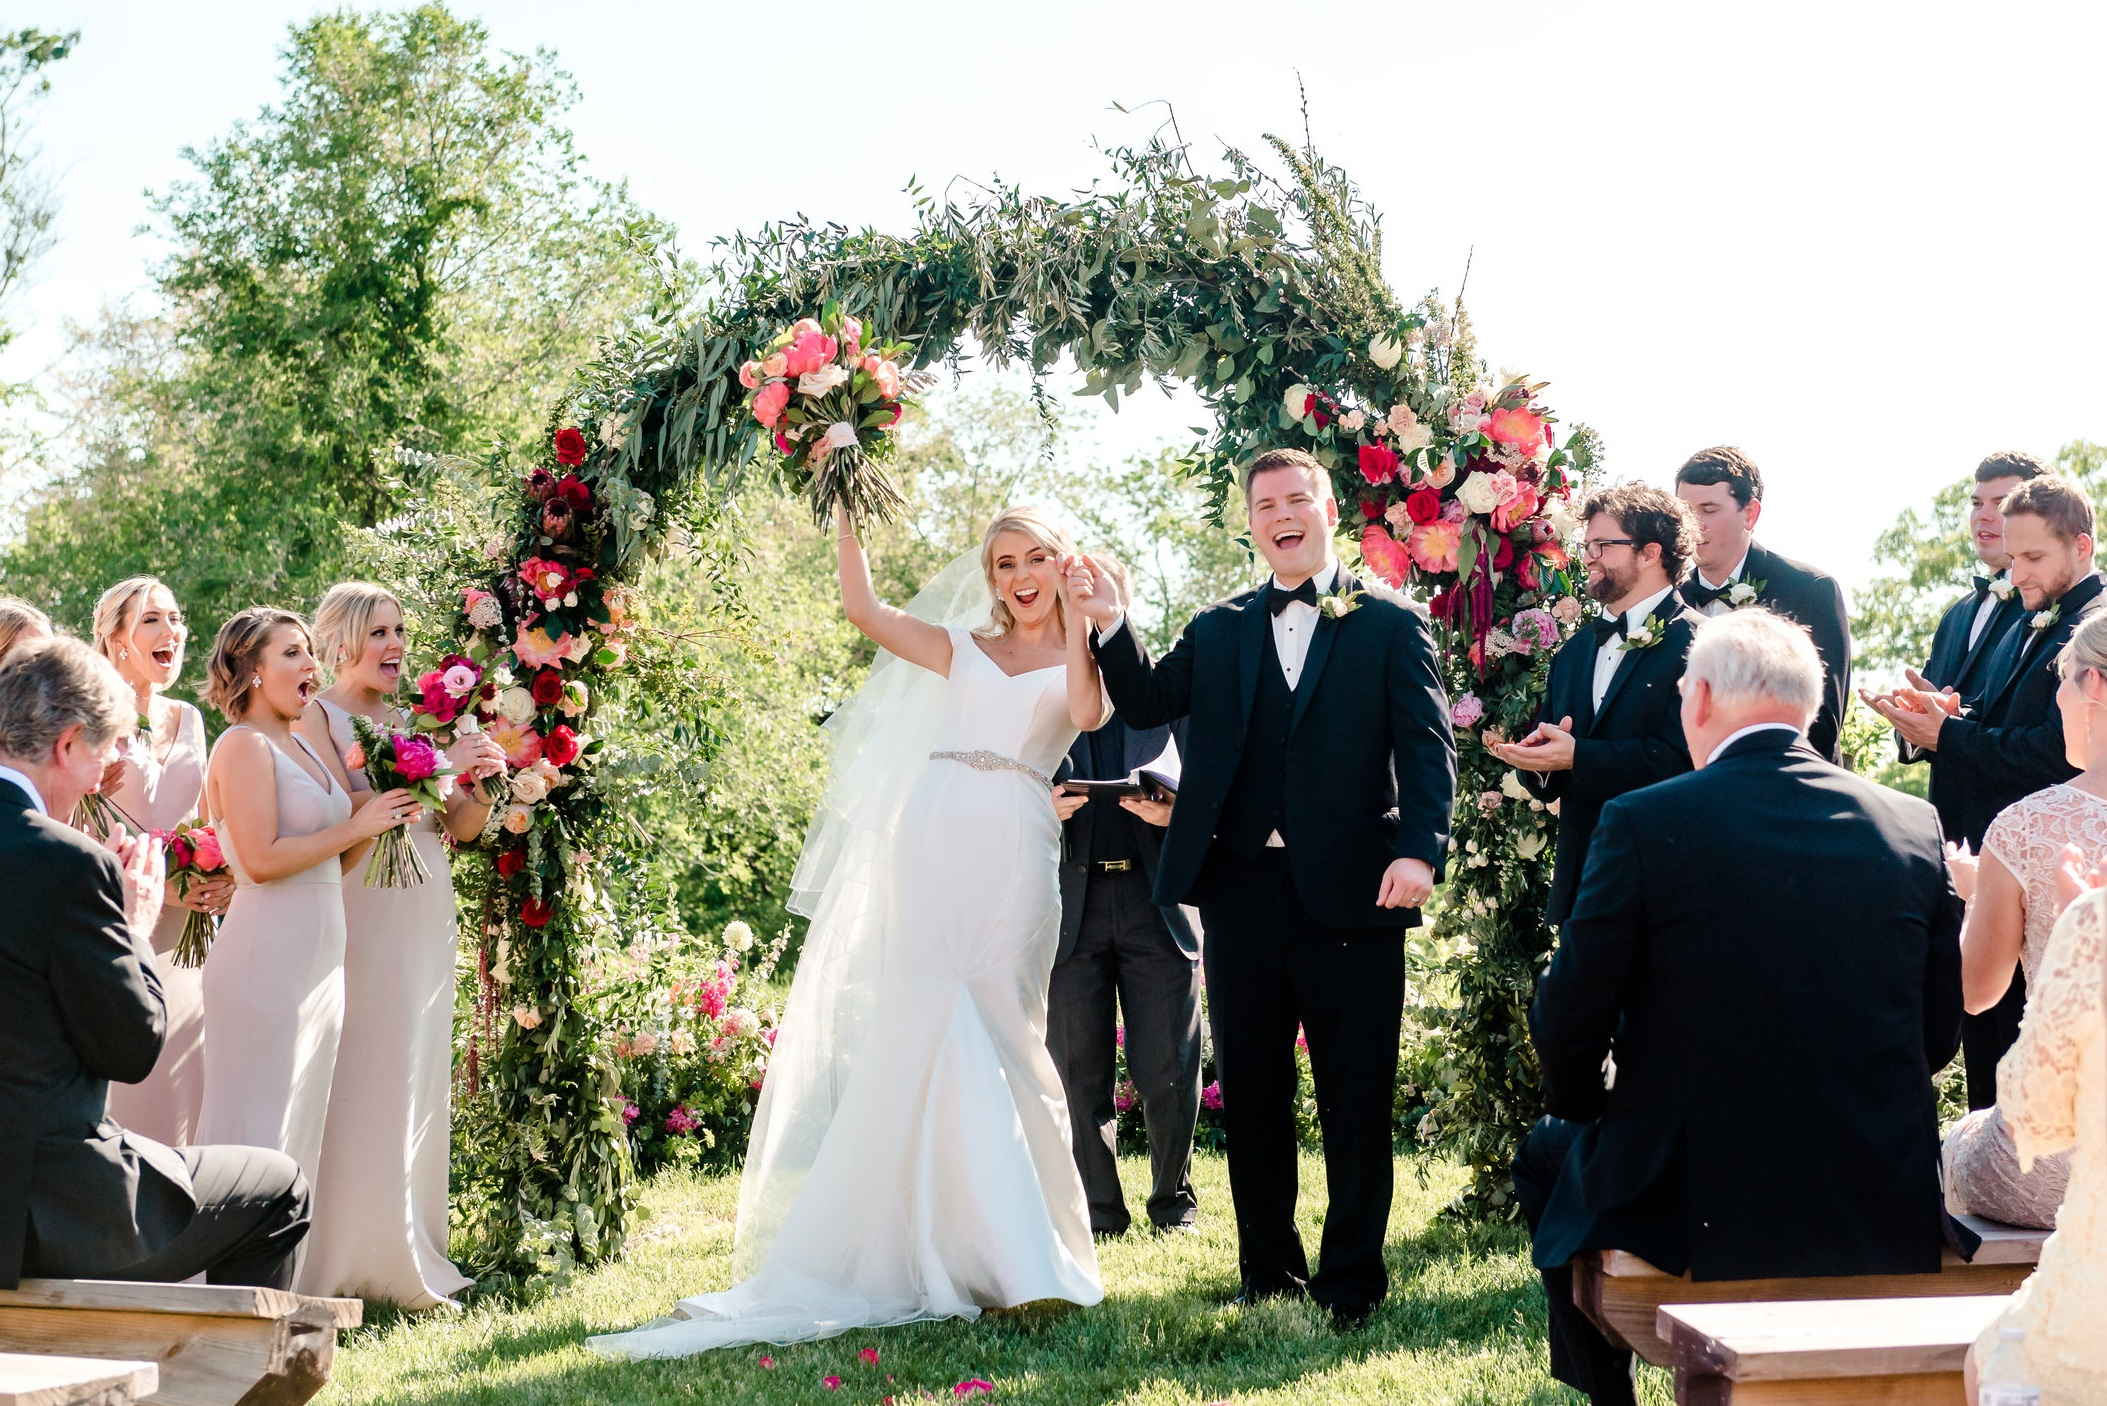 best wedding photographers in MN - Historic John P Furber Farm Wedding